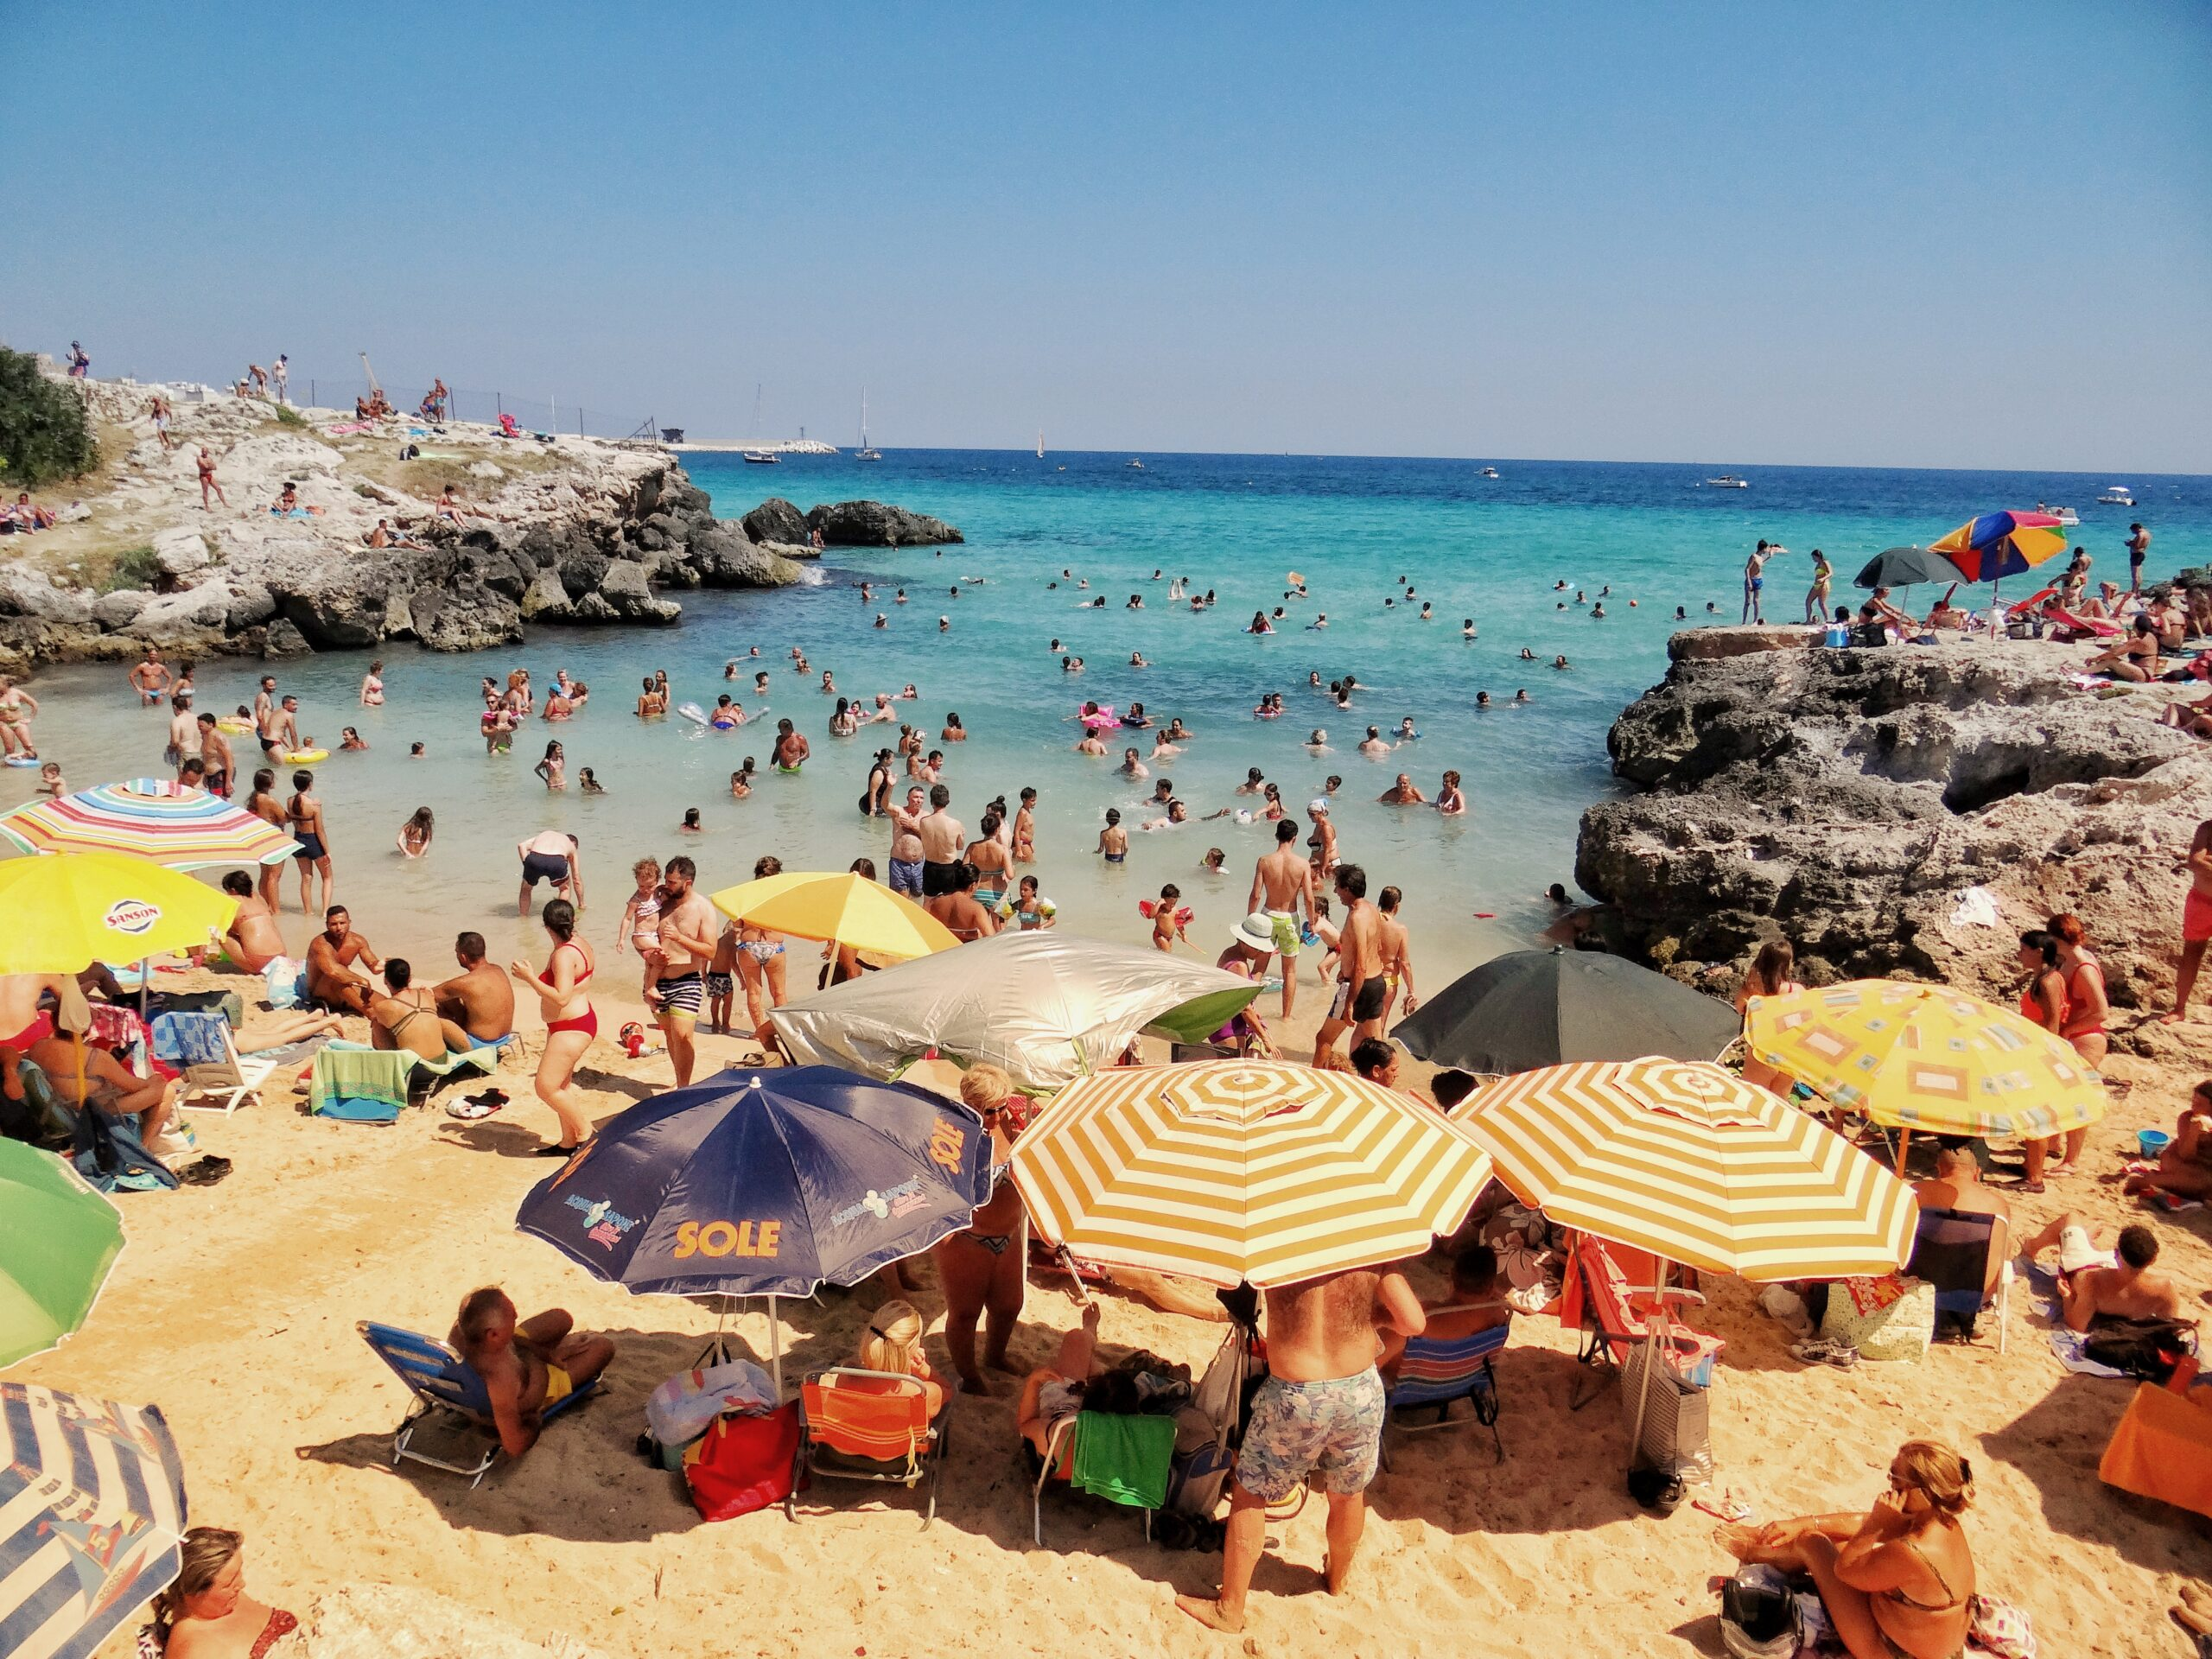 Monopoli is a popular coastal town in Puglia but the beach is busy and with little sand